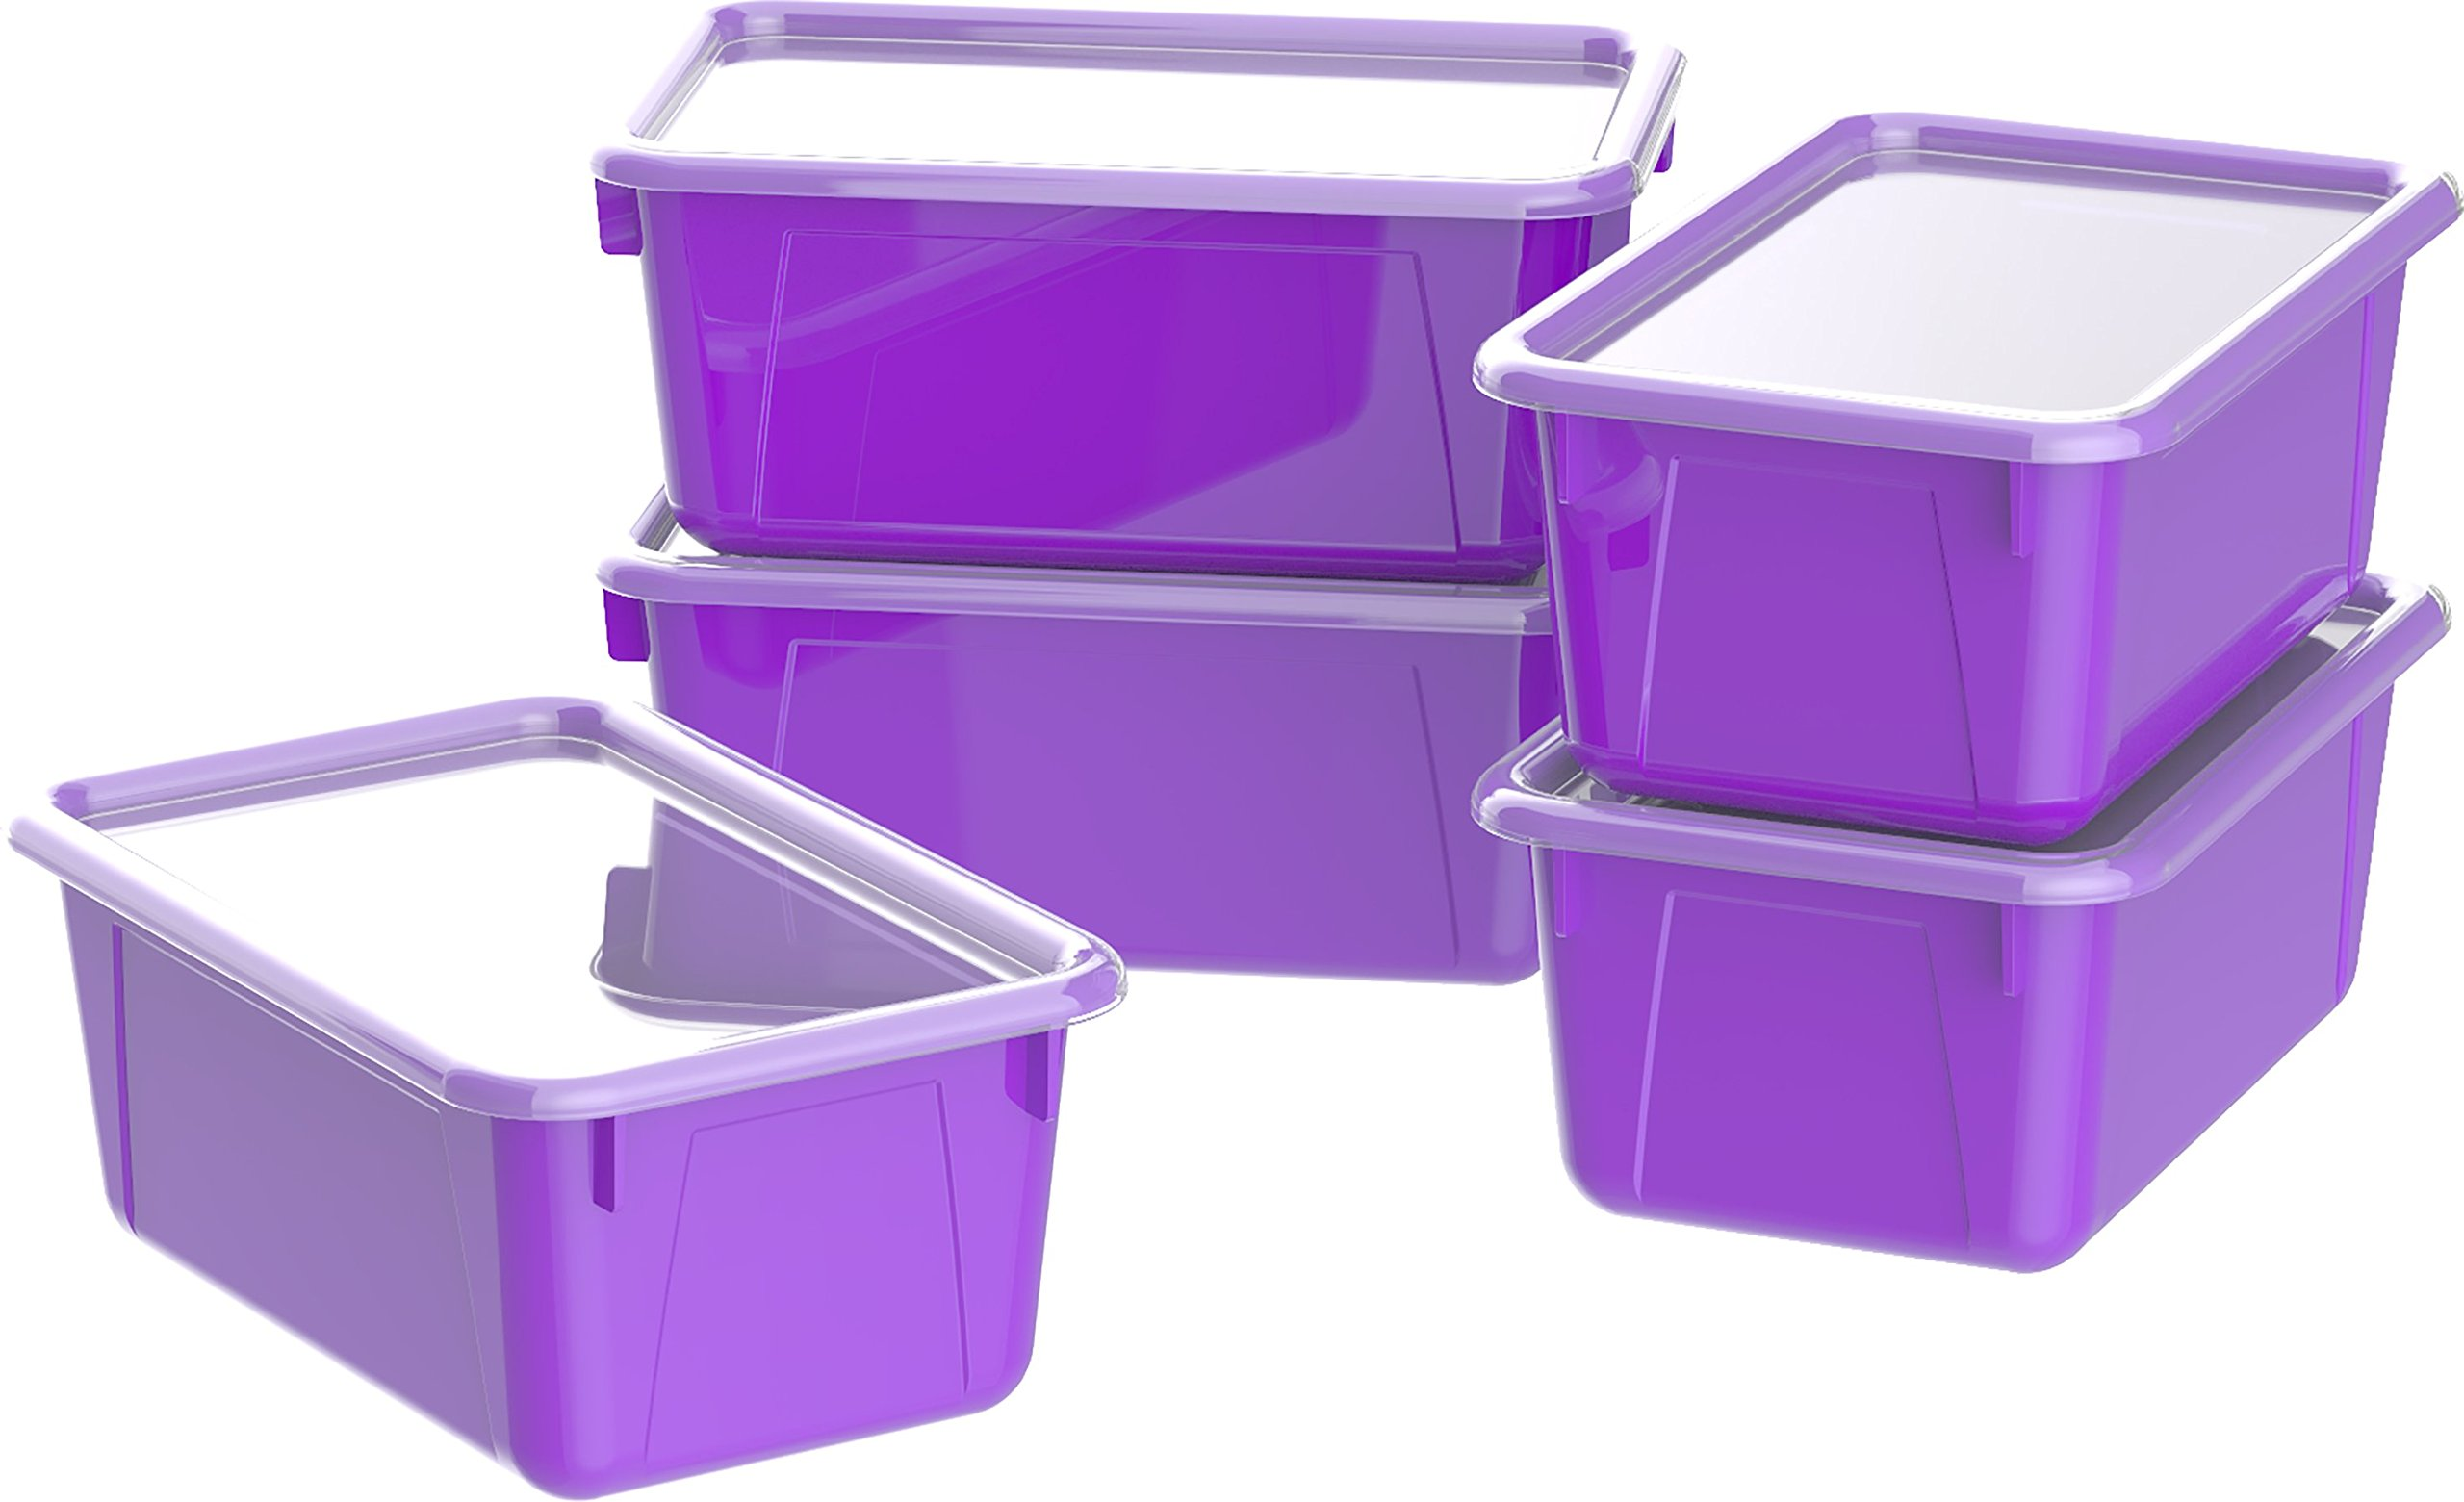 Storex Small Cubby Bins with Covers, Pack of 5, 12.2 x 7.8 x 5.1 Inches, Purple (62411U05C)